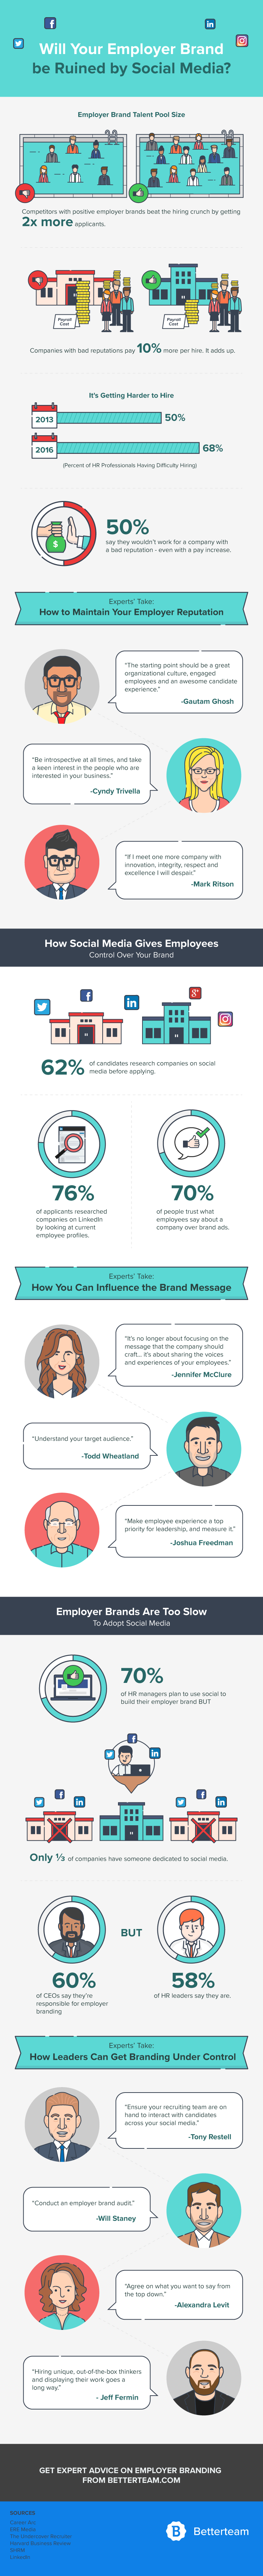 will-your-employer-brand-be-ruined-by-social-media